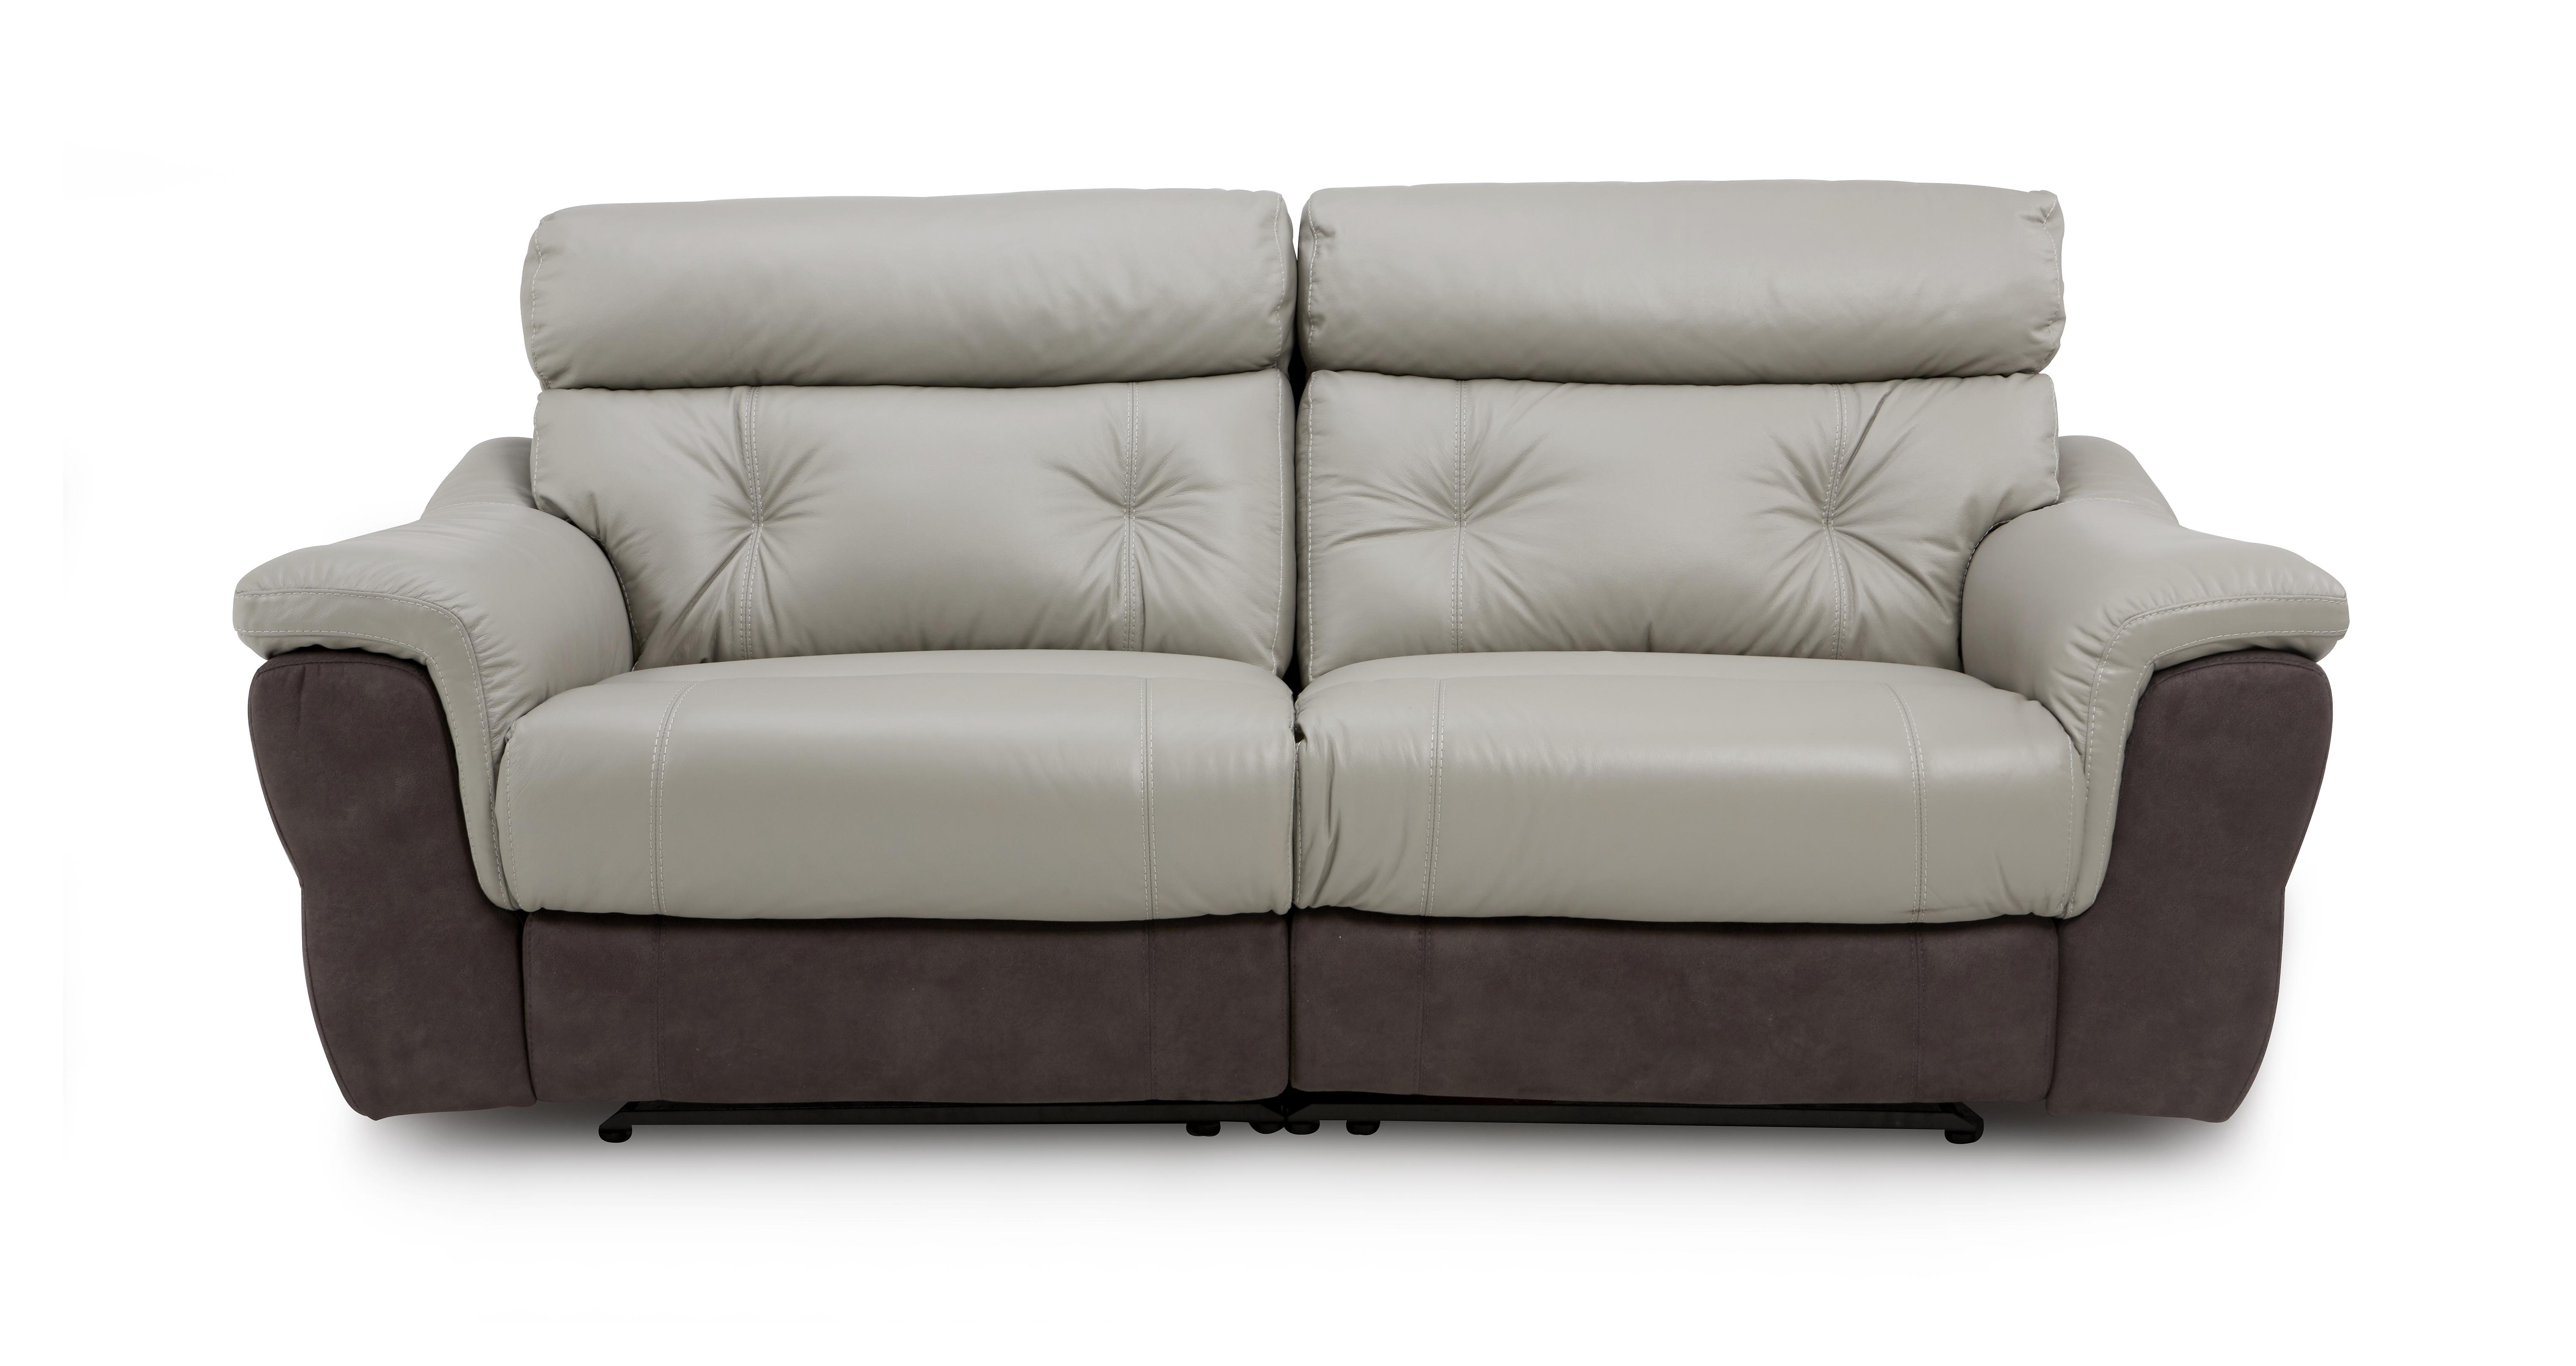 dfs recliner sofa bed bobkona barrie microsuede and loveseat set carello nickel grey leather ebay